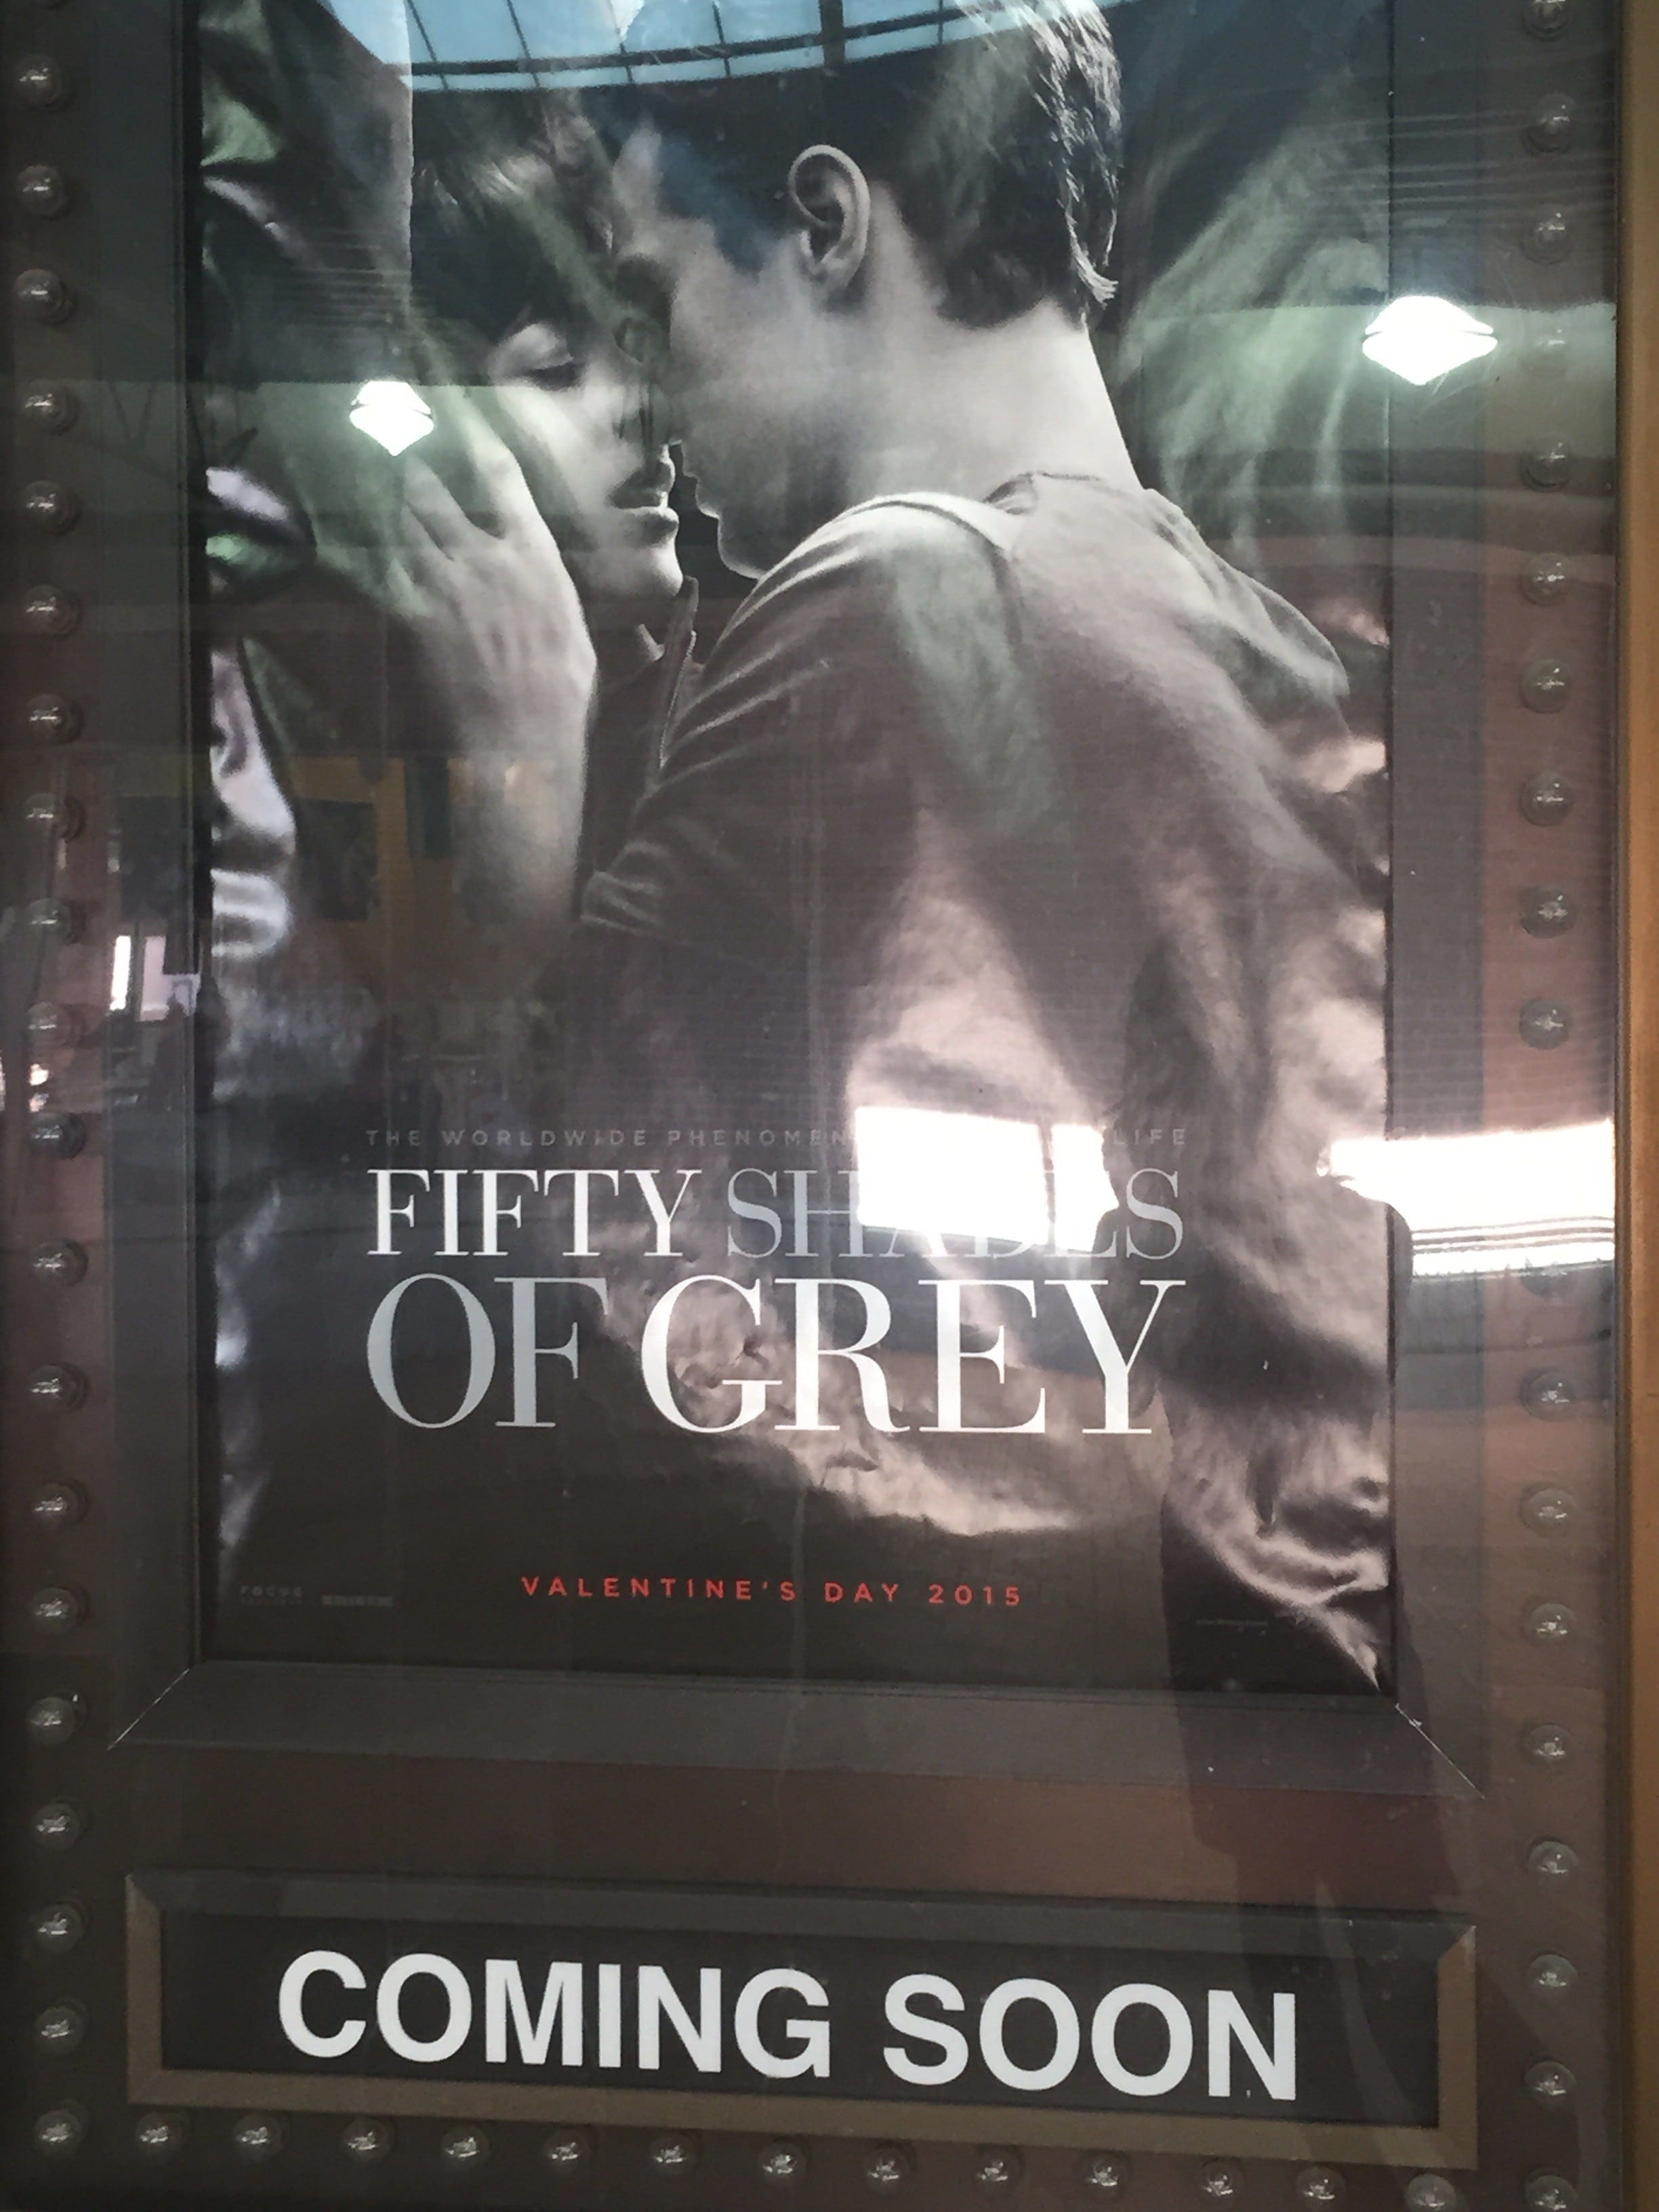 Fifty Shades of Grey Premiere Causes Controversy